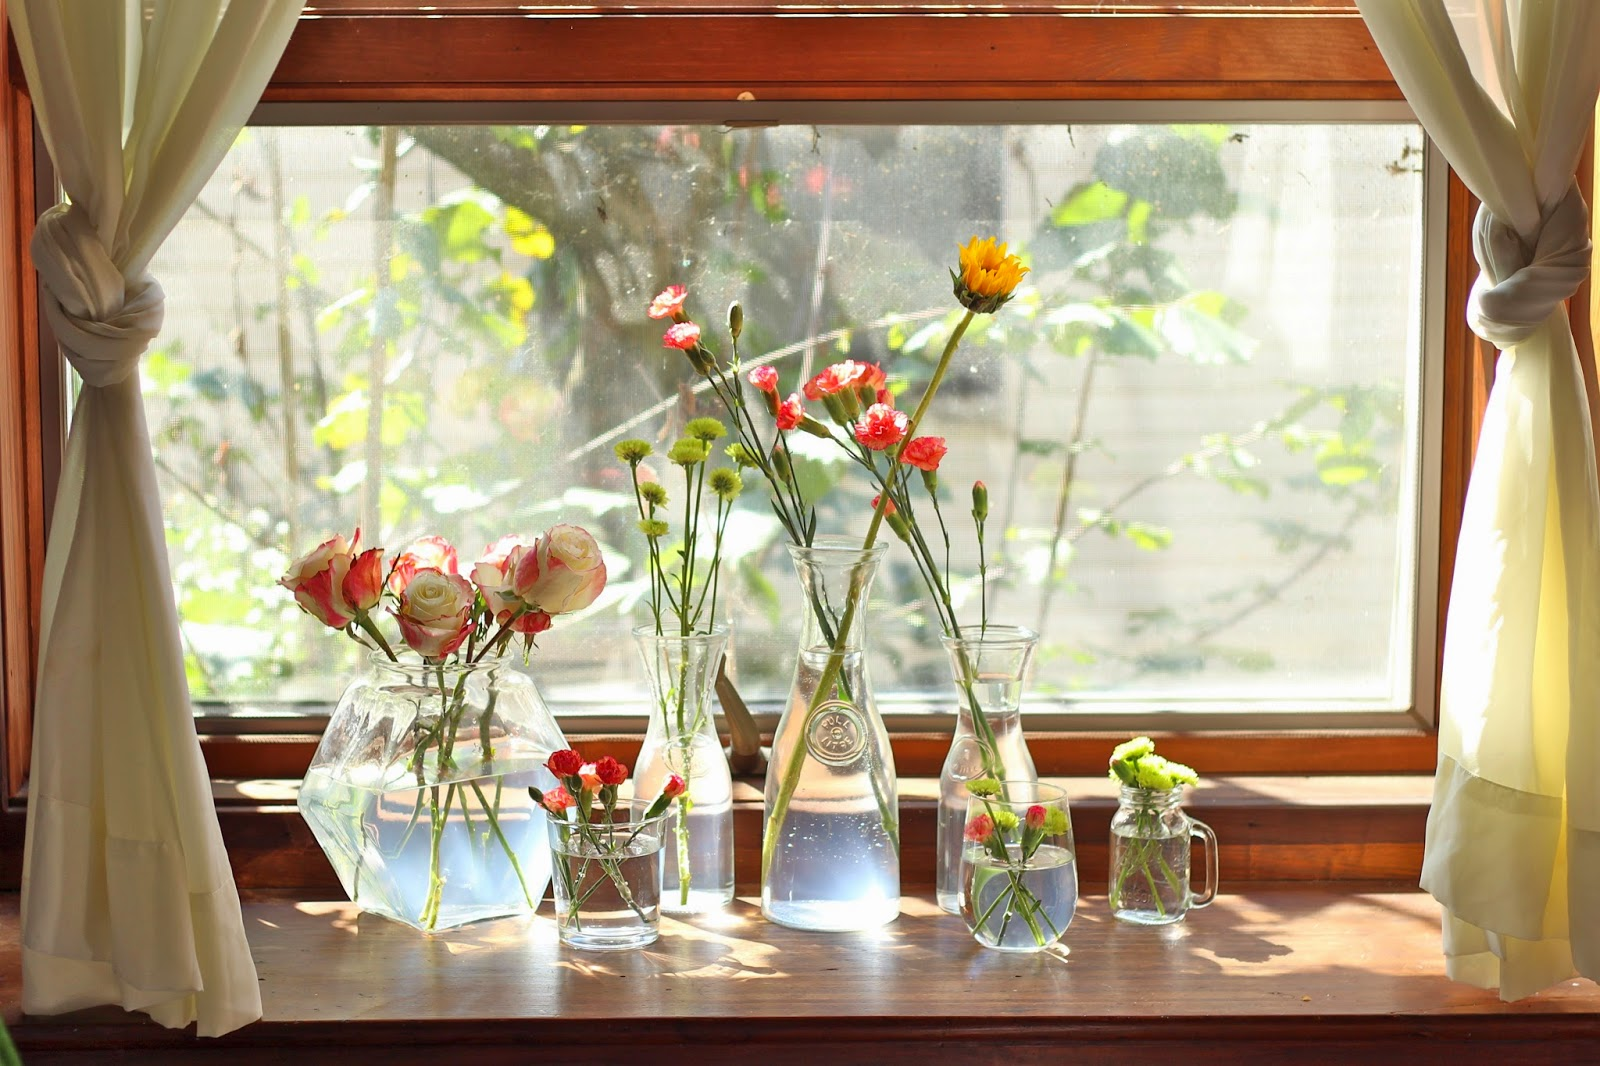 So everyone who knows my work knows how much I love bottles, jars and anything you can put flowers in. I would love the geometric vase in my living room.